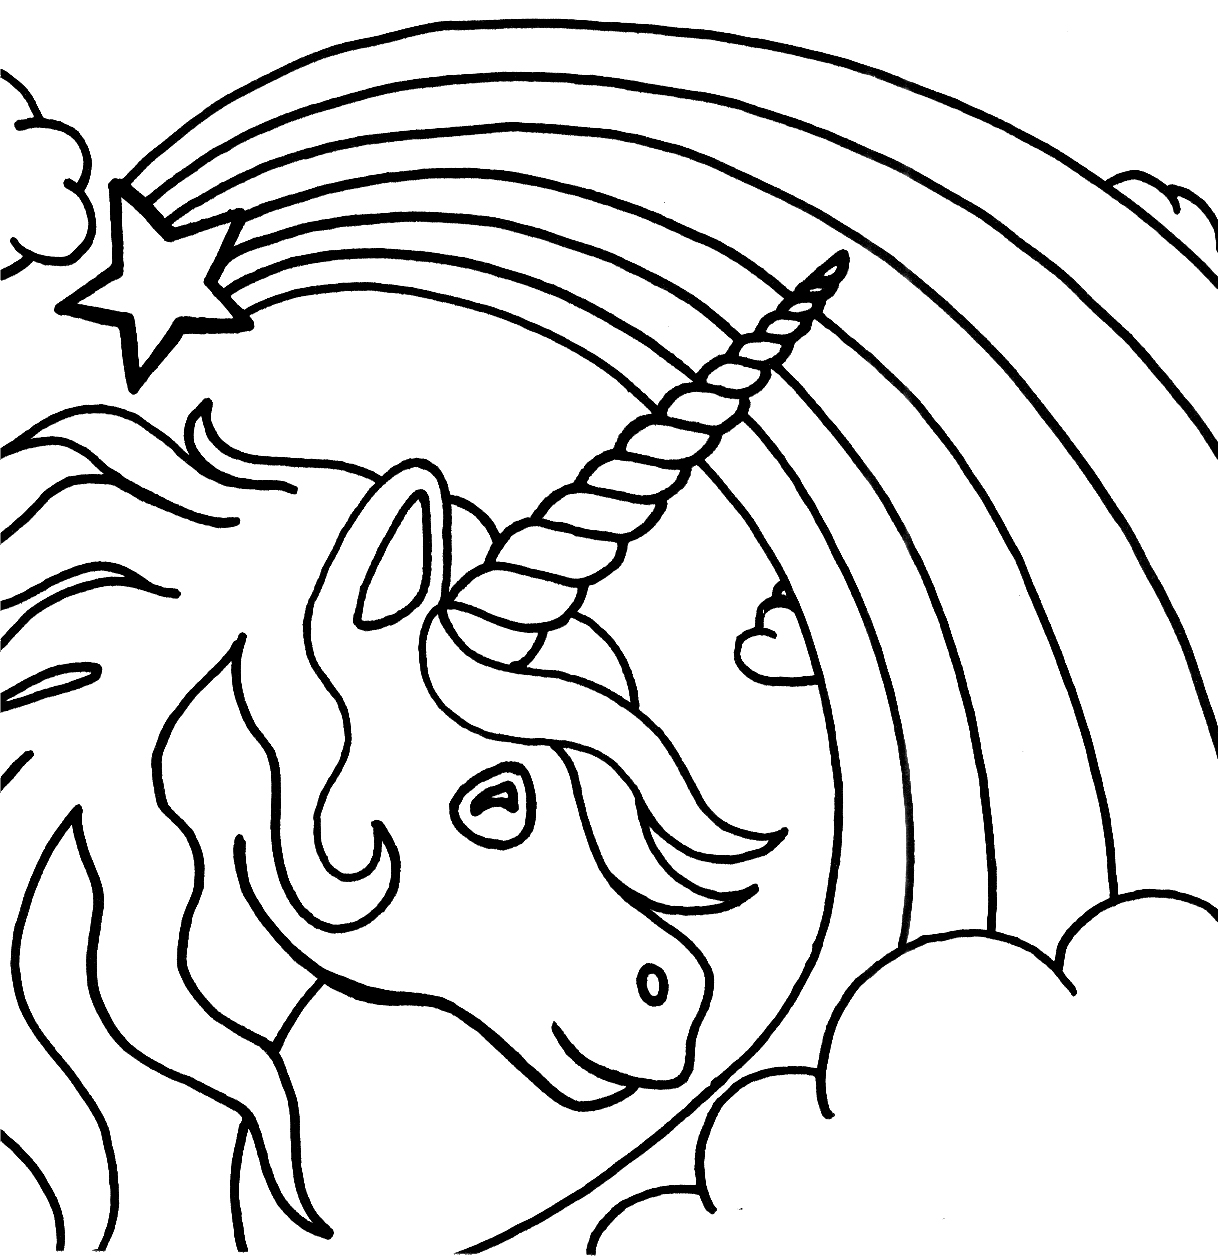 unicorn coloring pages for kids - Color In Pages